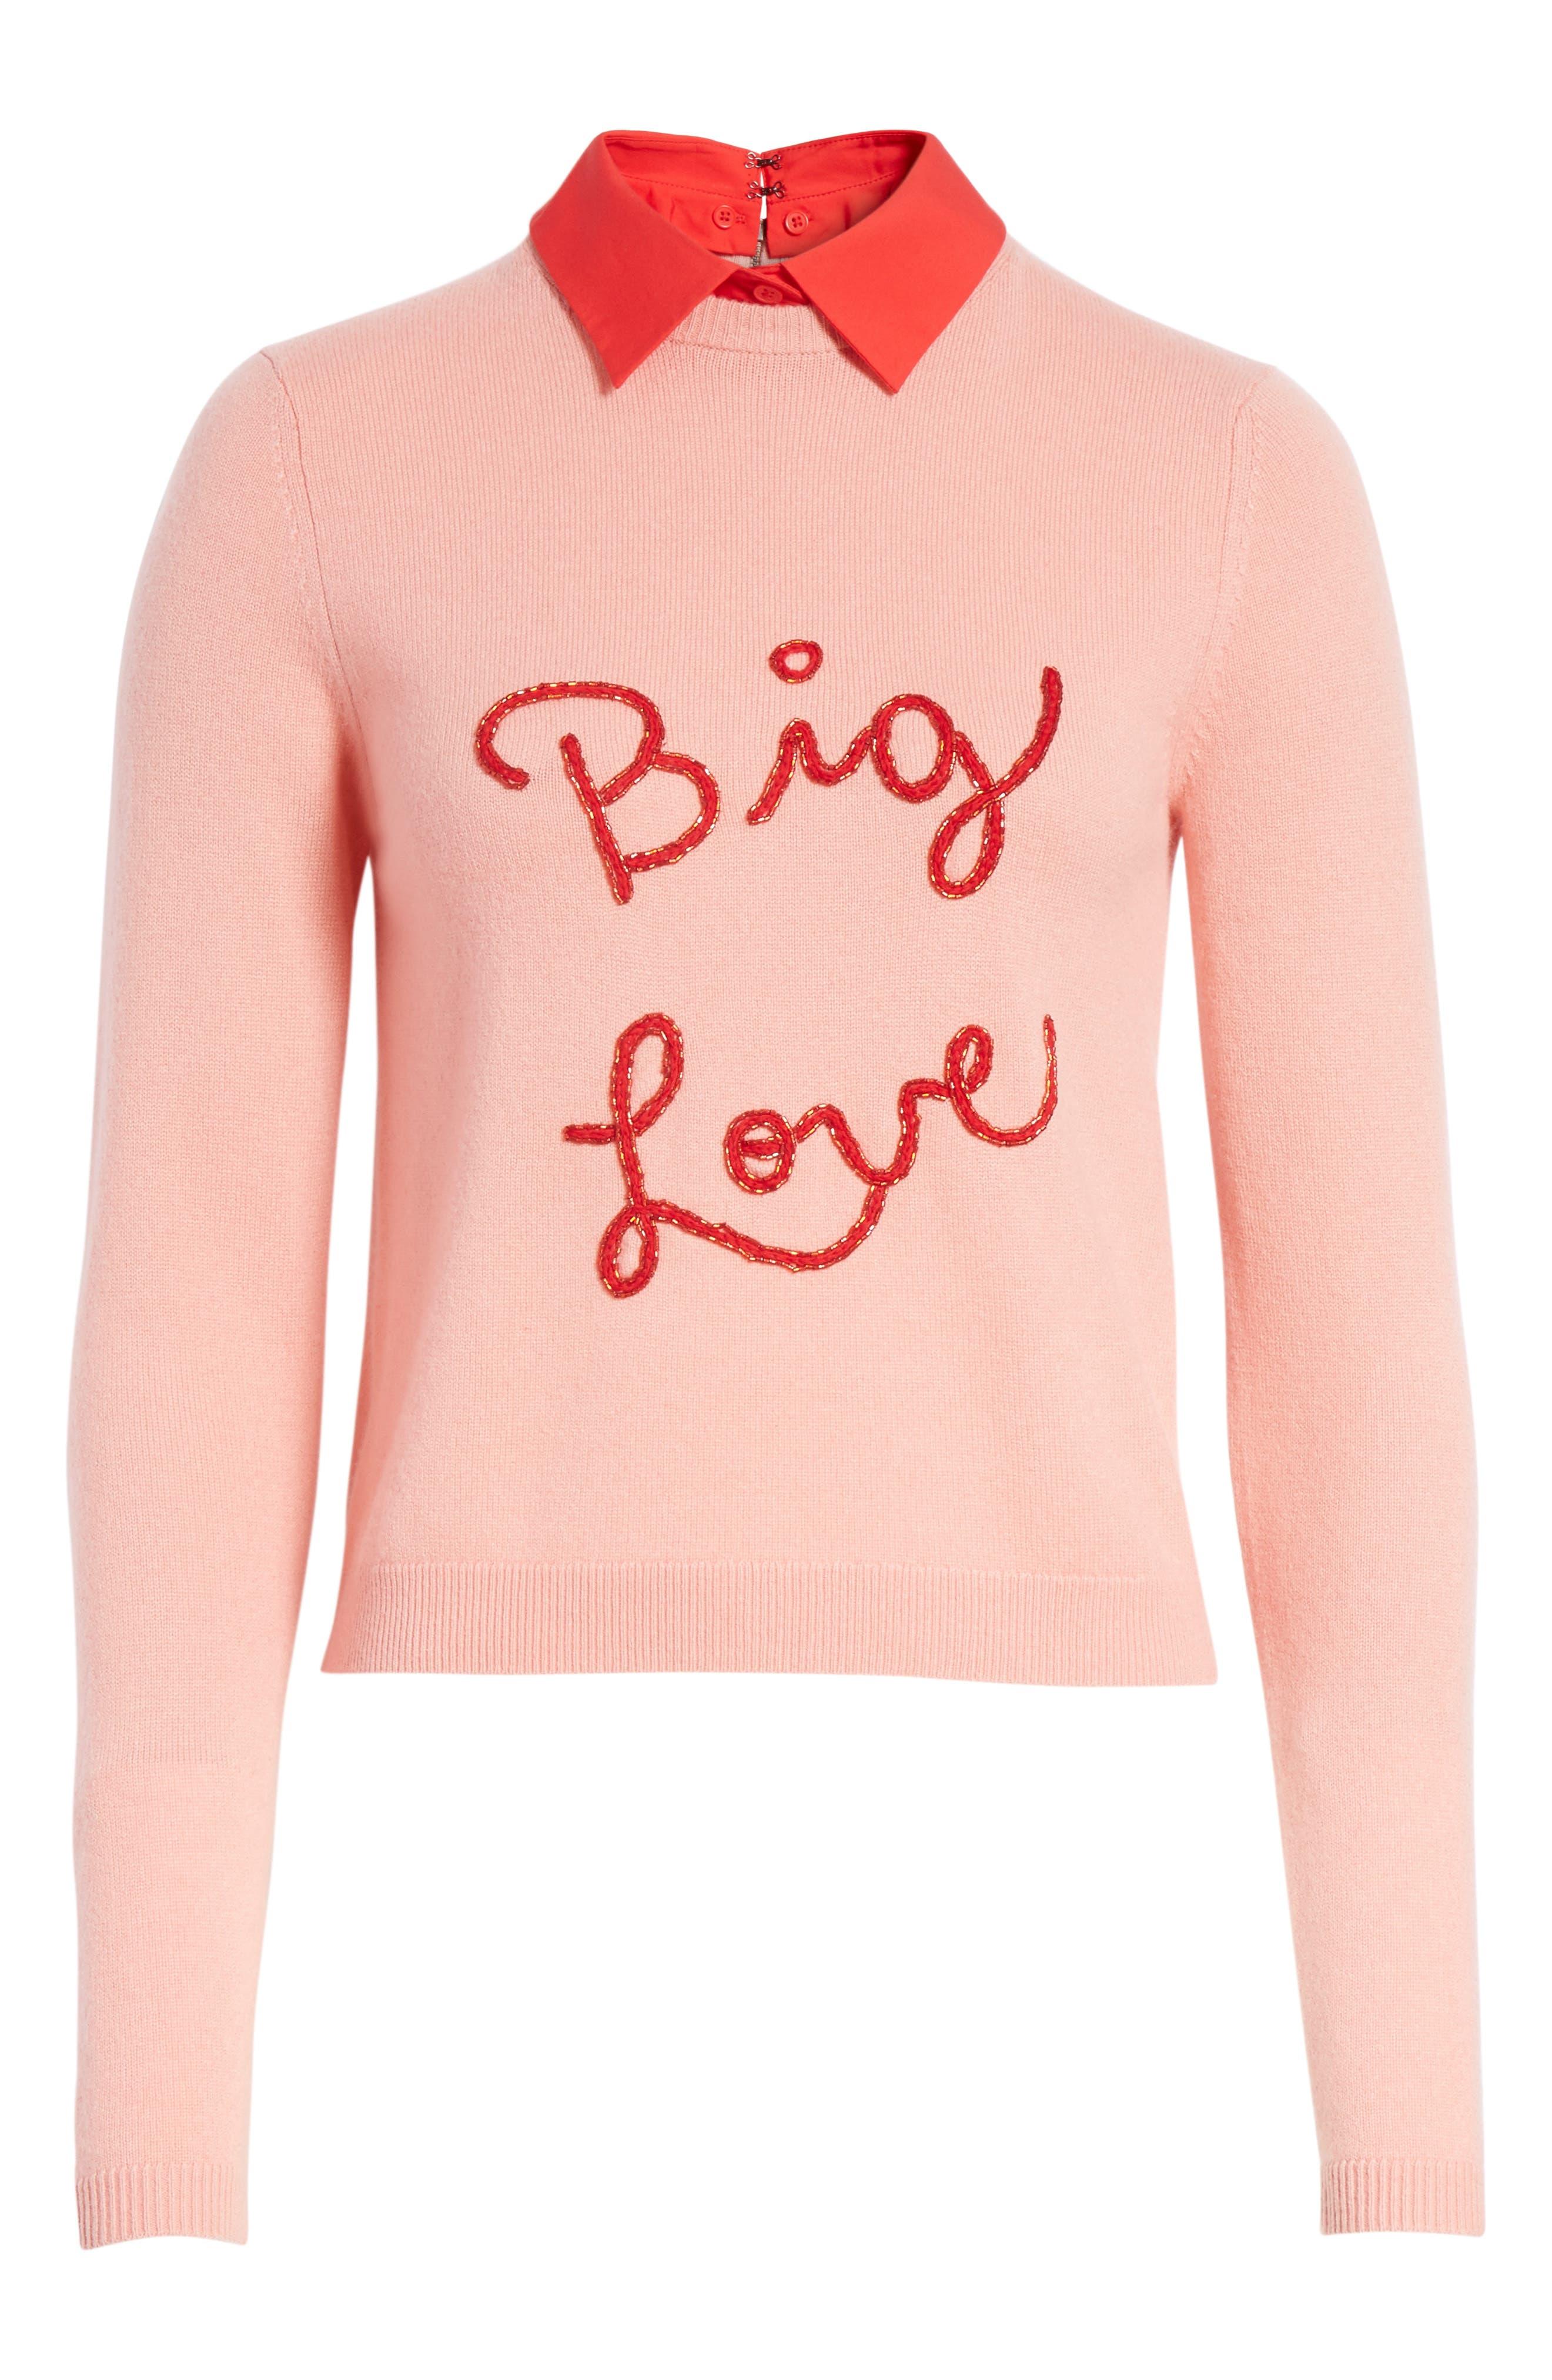 ALICE + OLIVIA,                             Big Love Embroidered Cashmere Sweater,                             Alternate thumbnail 6, color,                             651